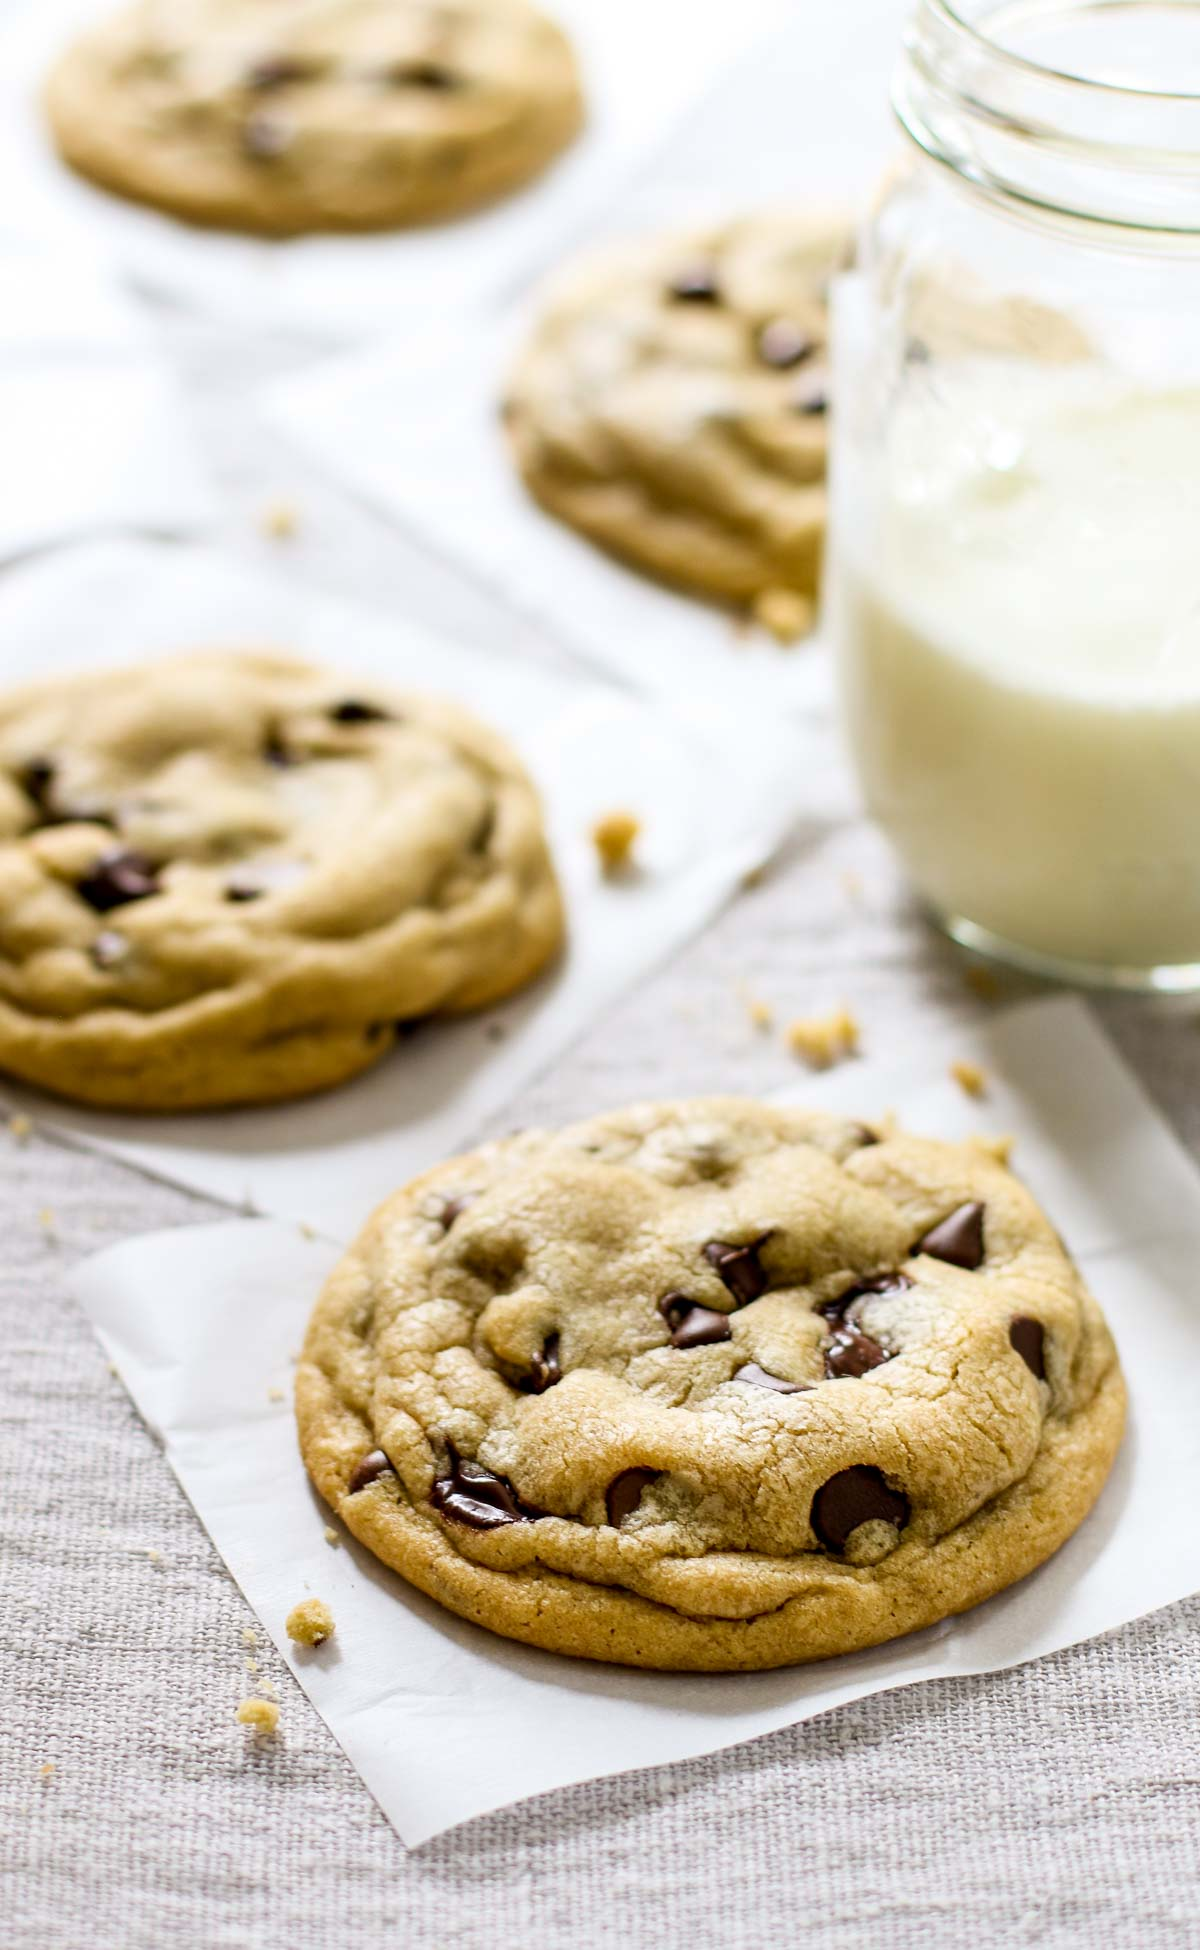 The best chocolate chip cookie recipe (trust me)